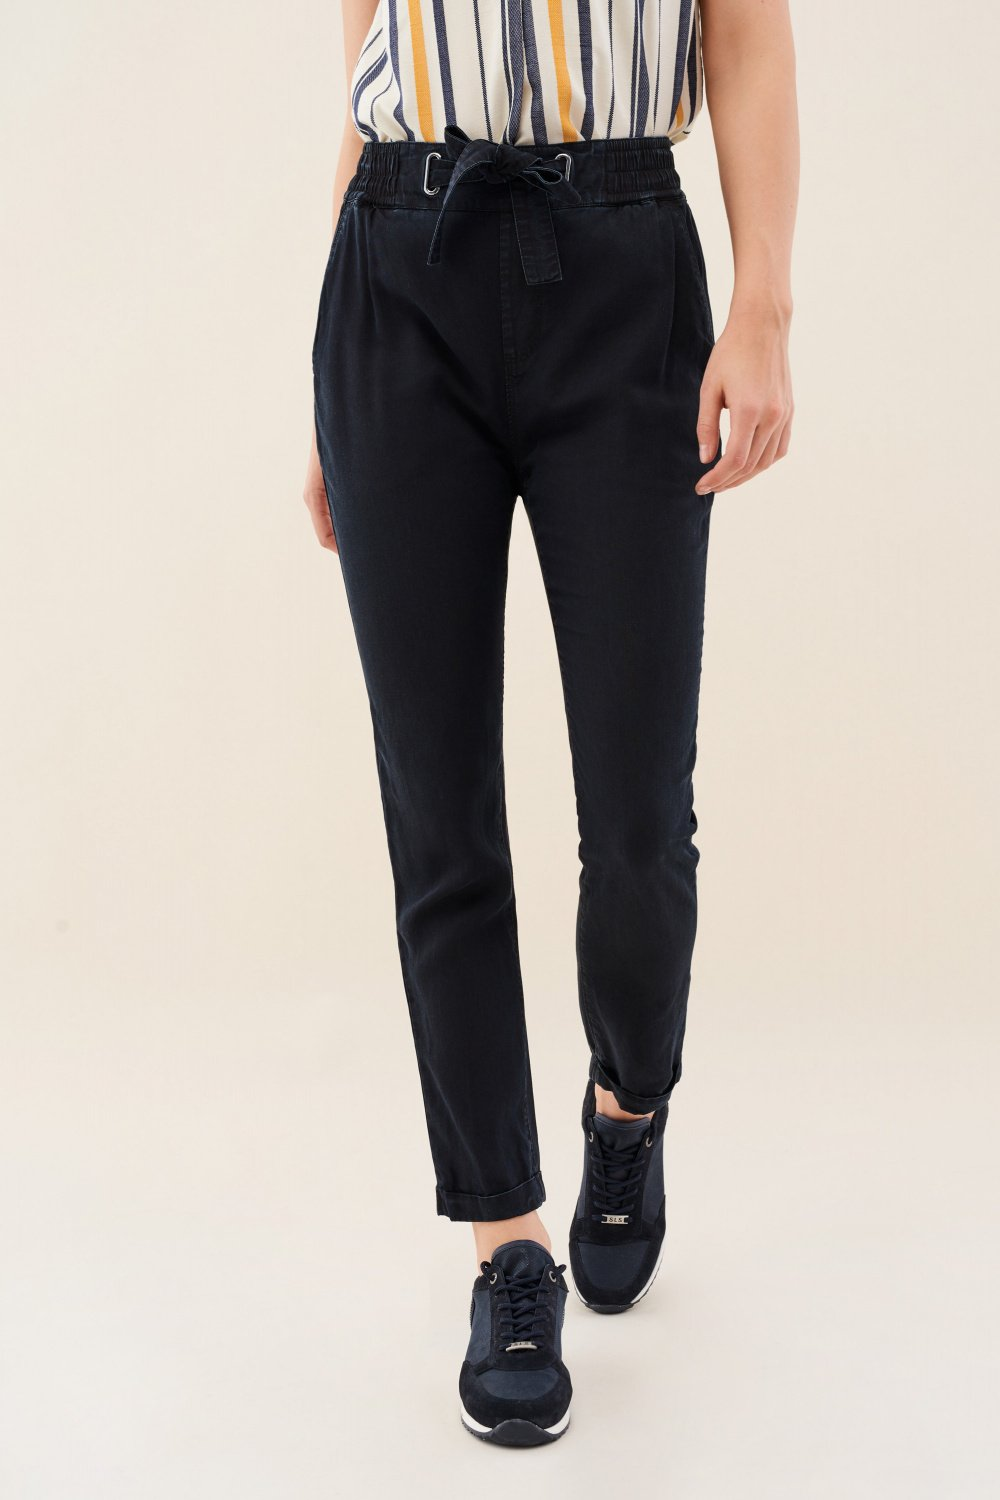 Pantaloni june jogger denim - Salsa